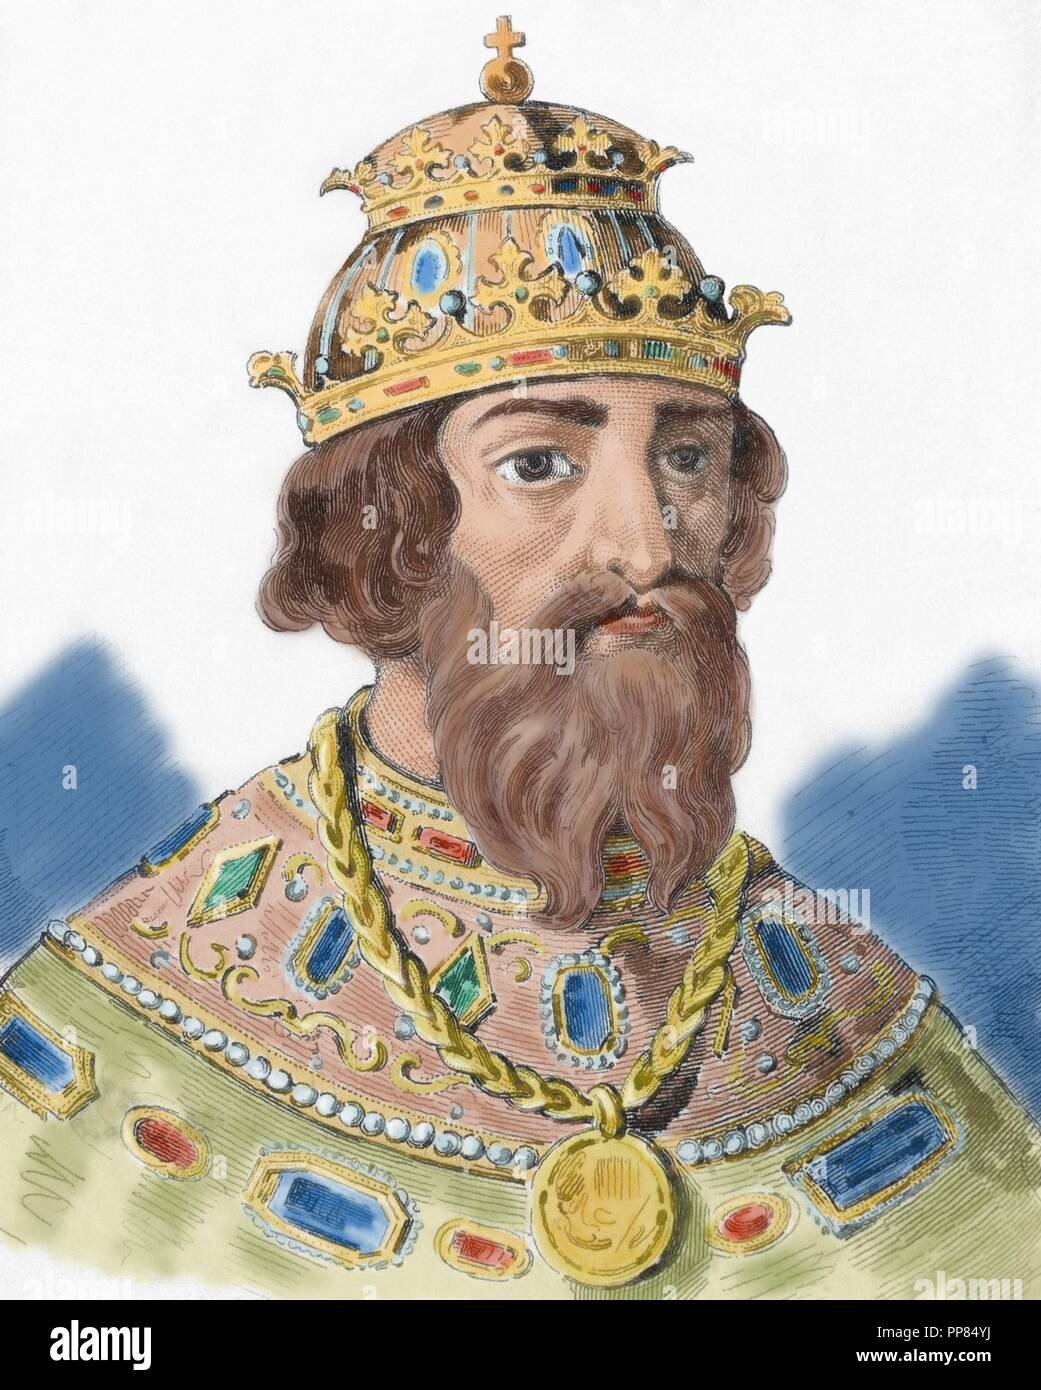 Ivan IV Vasilyevich (1530-1584), known as Ivan the Terrible. Grand Prince of Moscow (1533-1547) and Tsar of All the Russias (1547-1584). Portrait. Engraving. Colored. - Stock Image